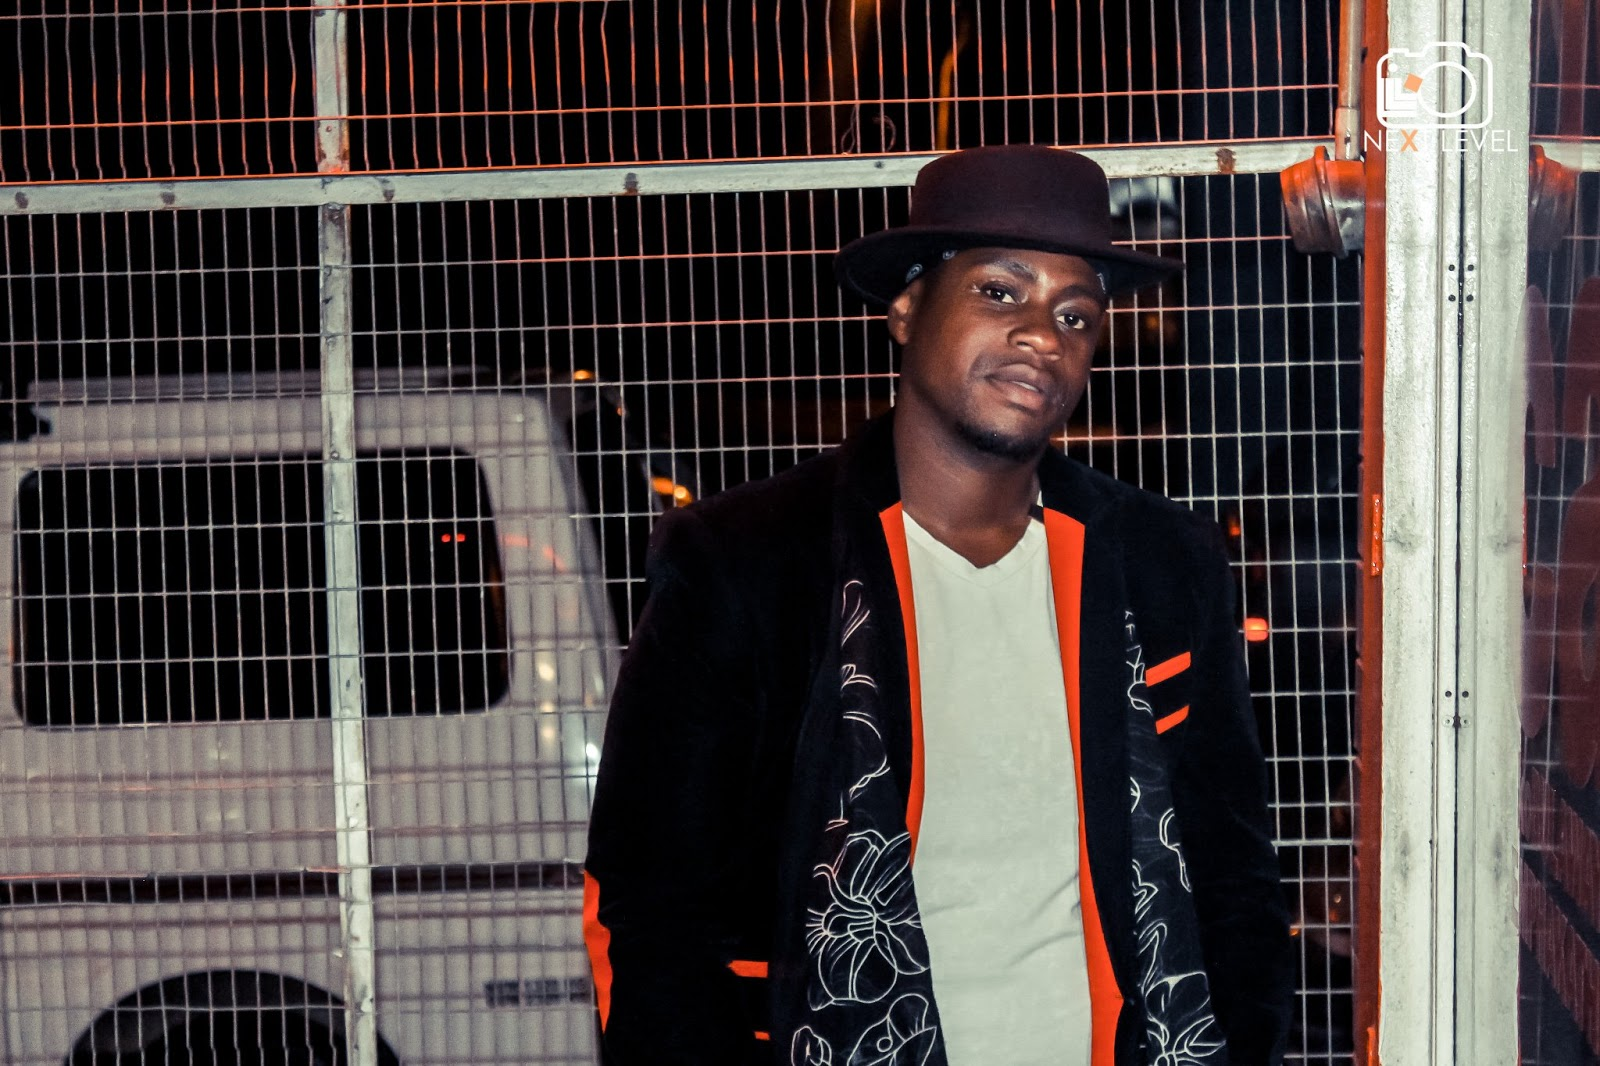 M.U.S.E the Artist and Asaph Get Loose in new offering